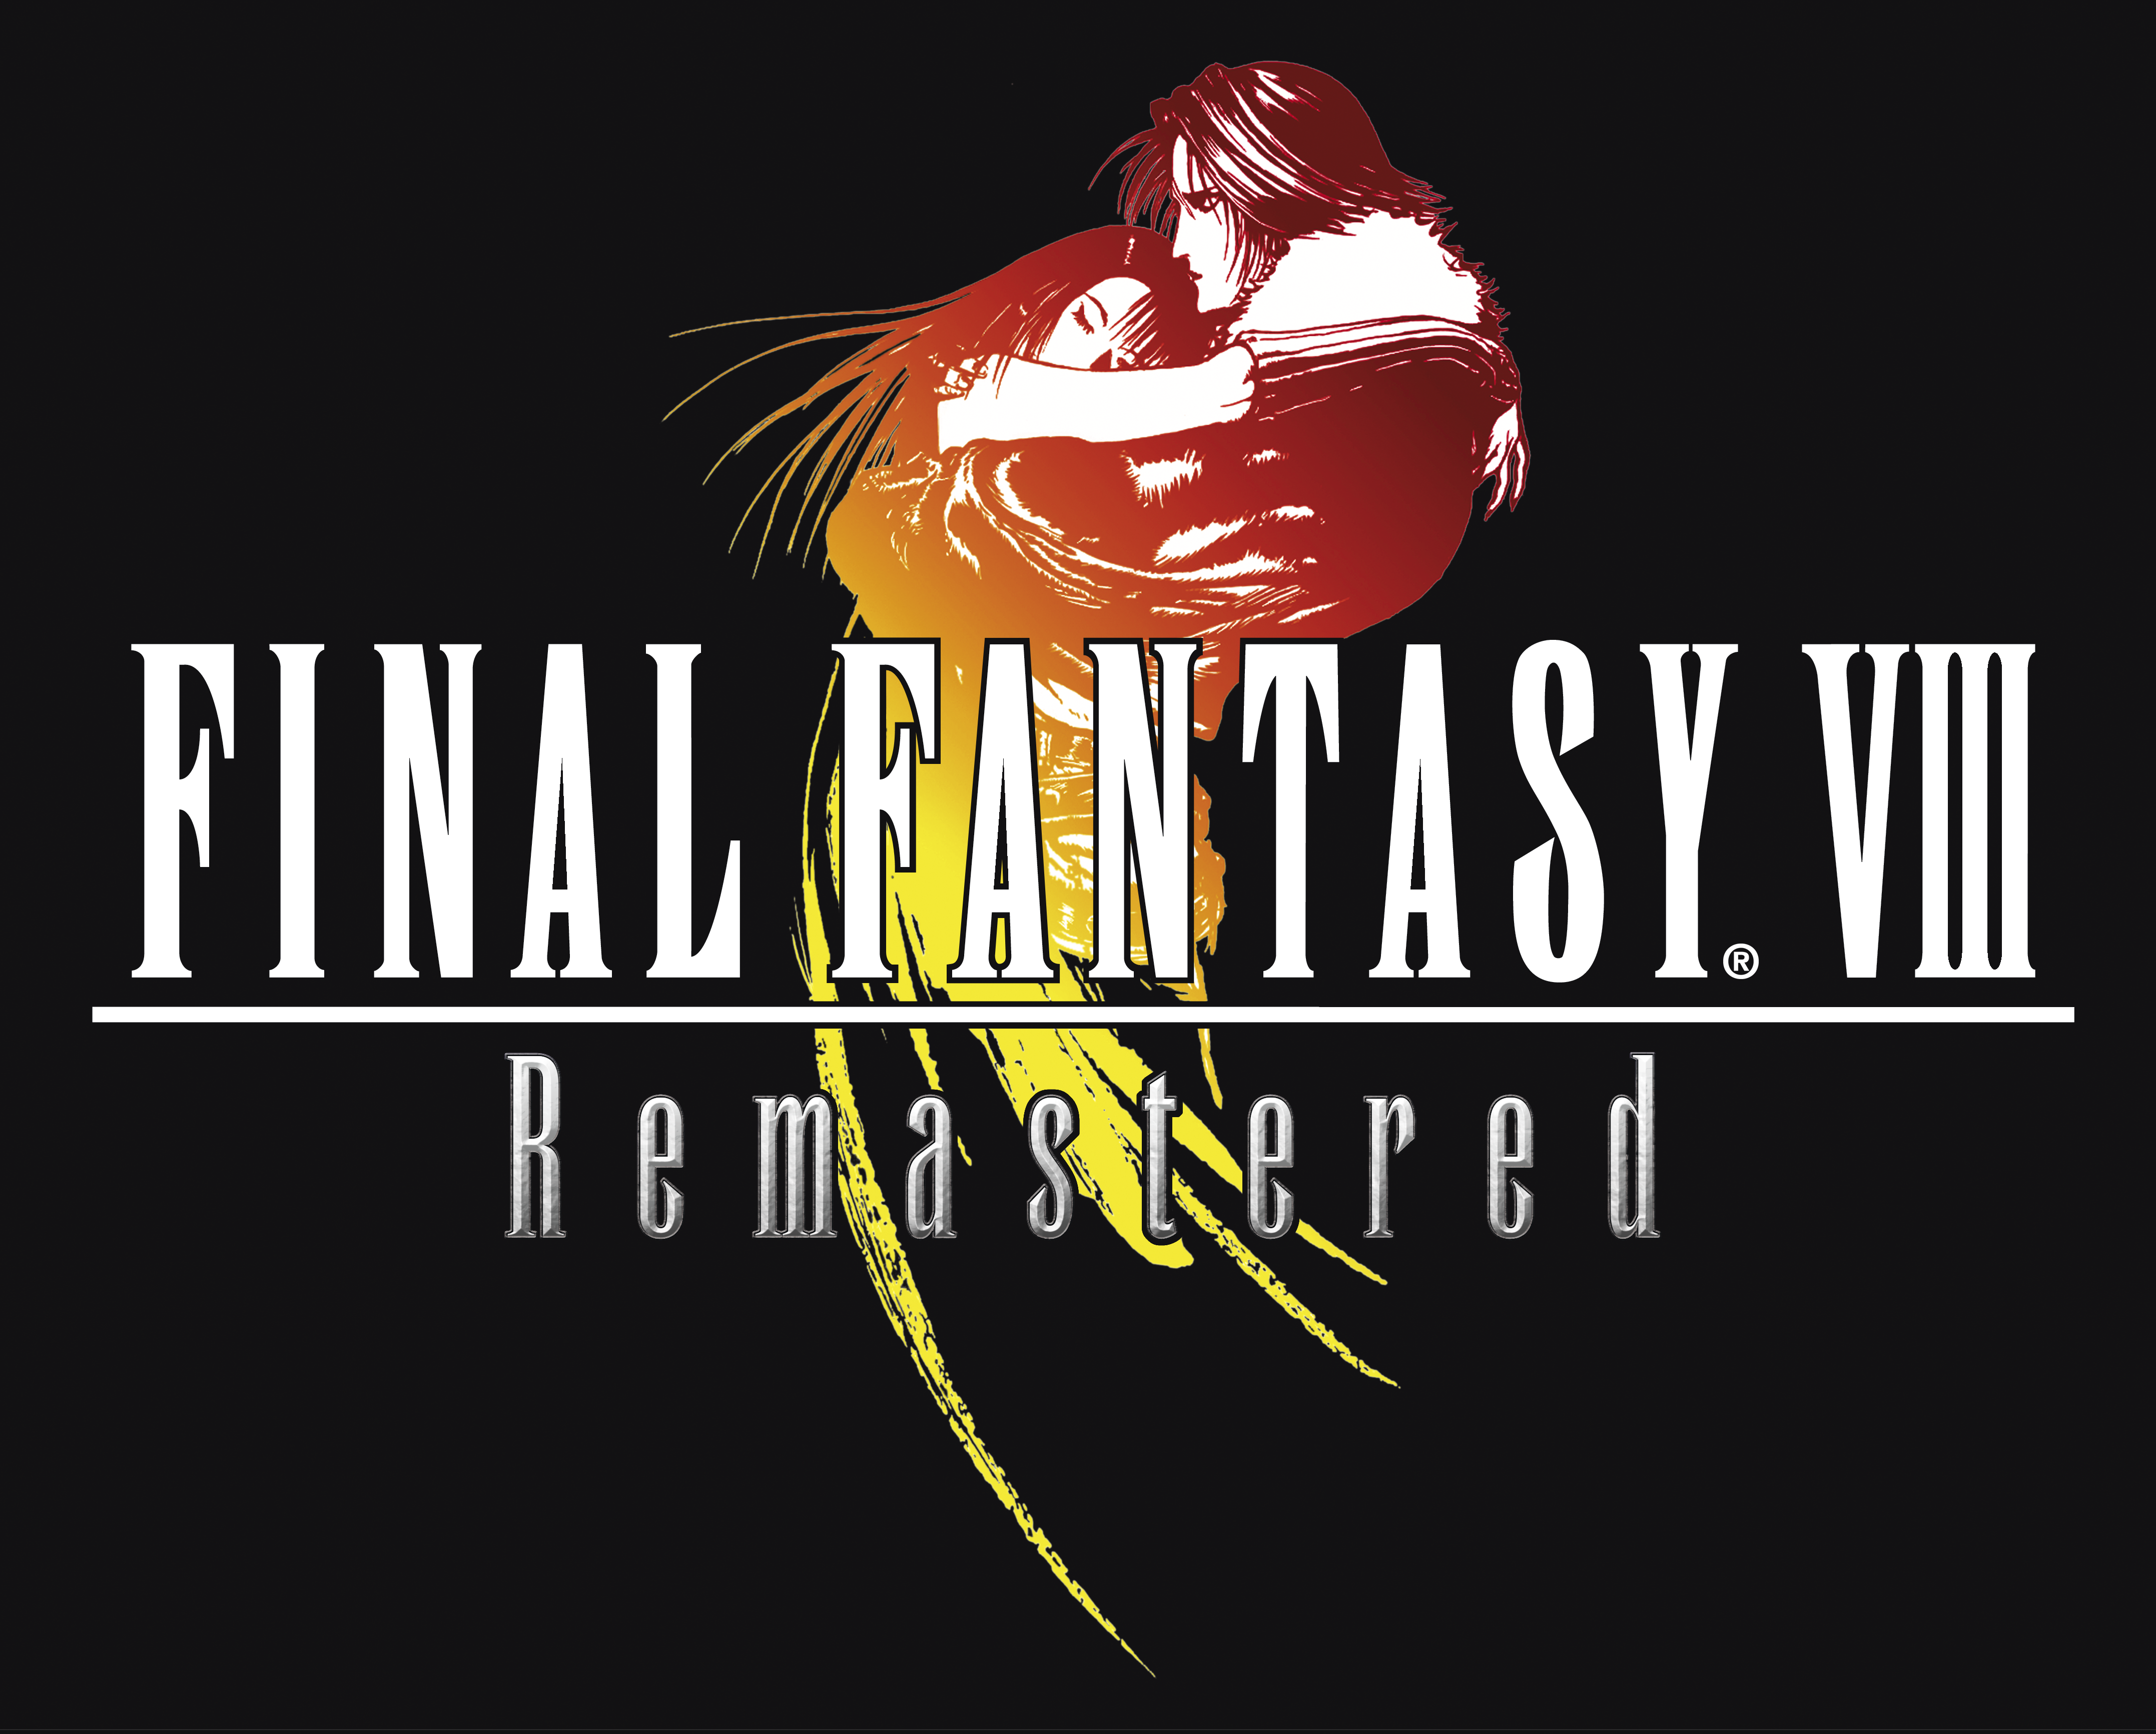 Final Fantasy VIII: Remaster release date –  03/08/2019